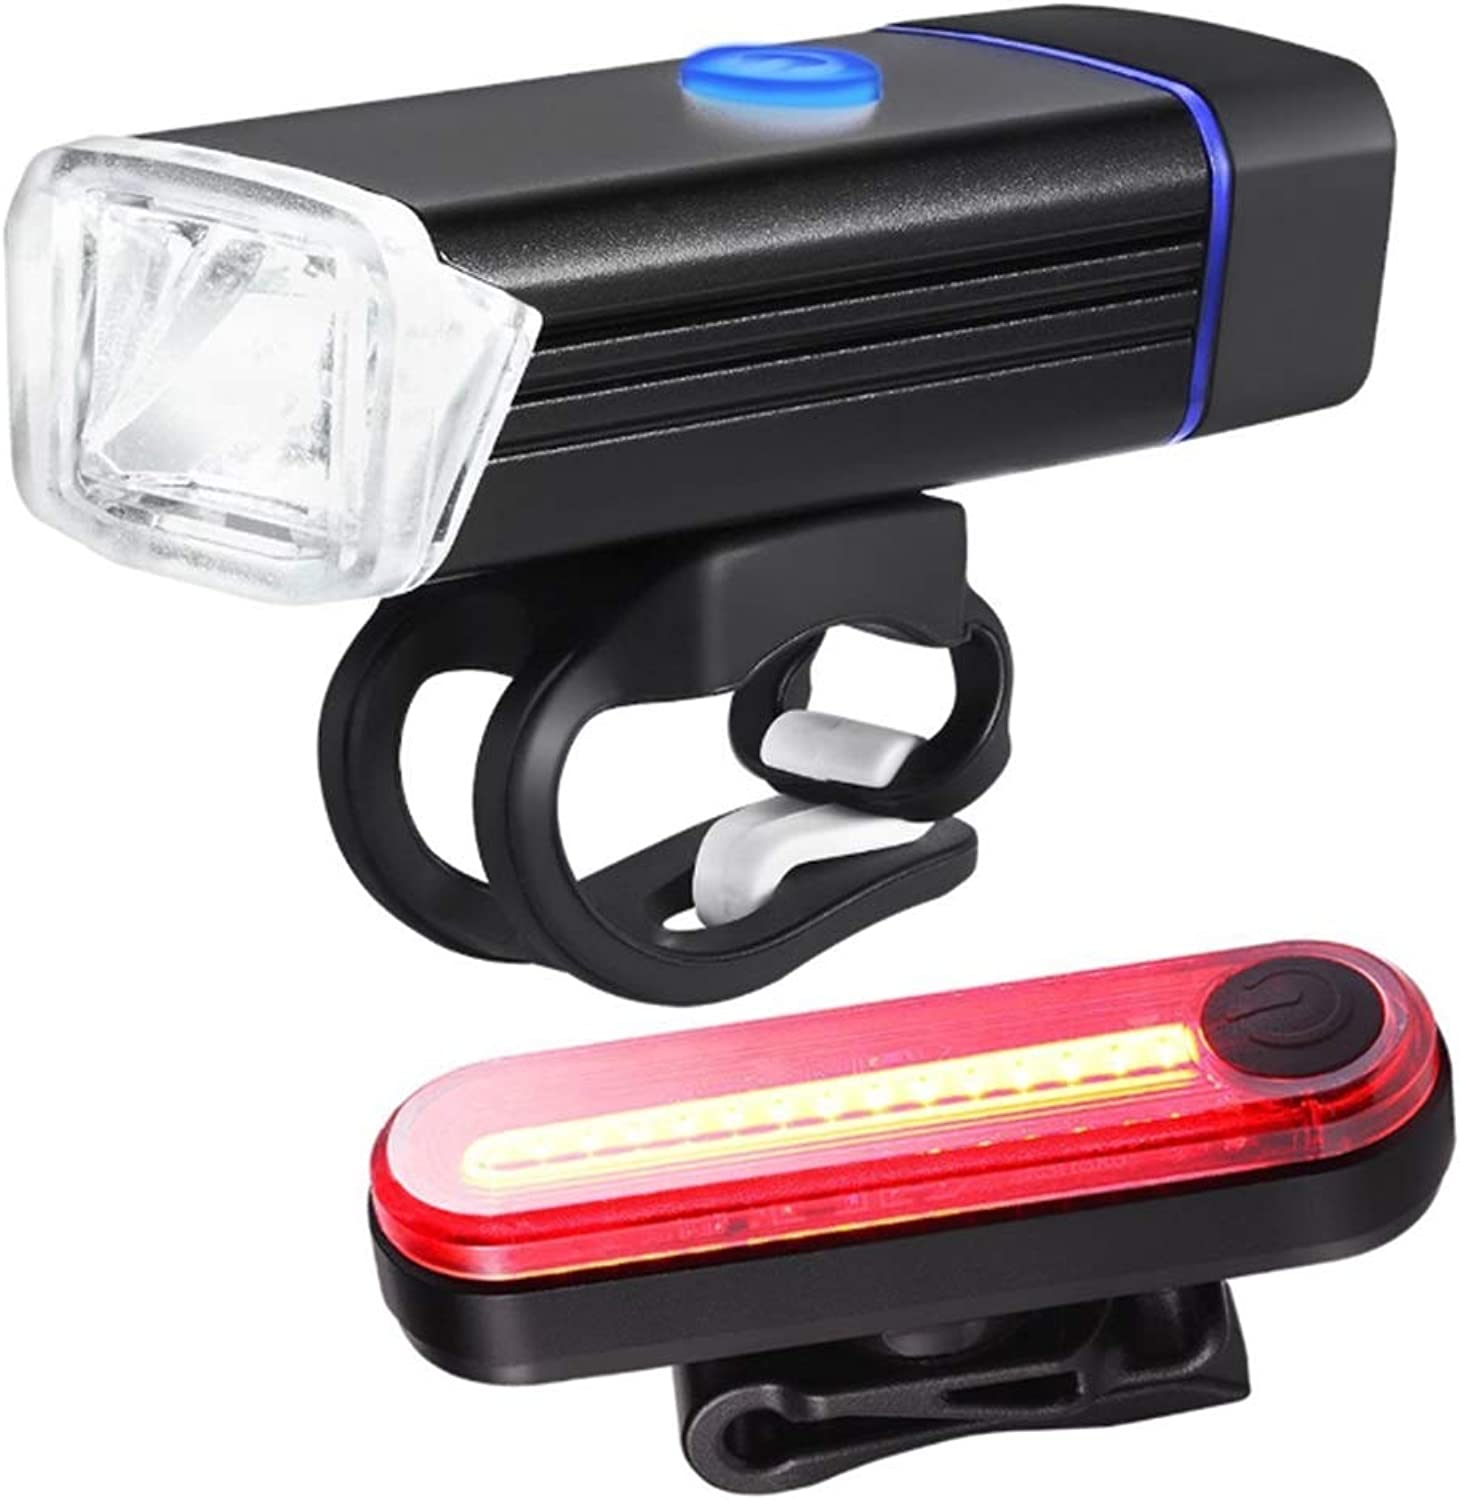 USB Rechargeable Bike Light Set Powerful Lumens Bicycle Headlight Free Tail Light, LED Front and Back Rear Lights Easy to Install for Kids Men Women Road Cycling Safety Flashlight